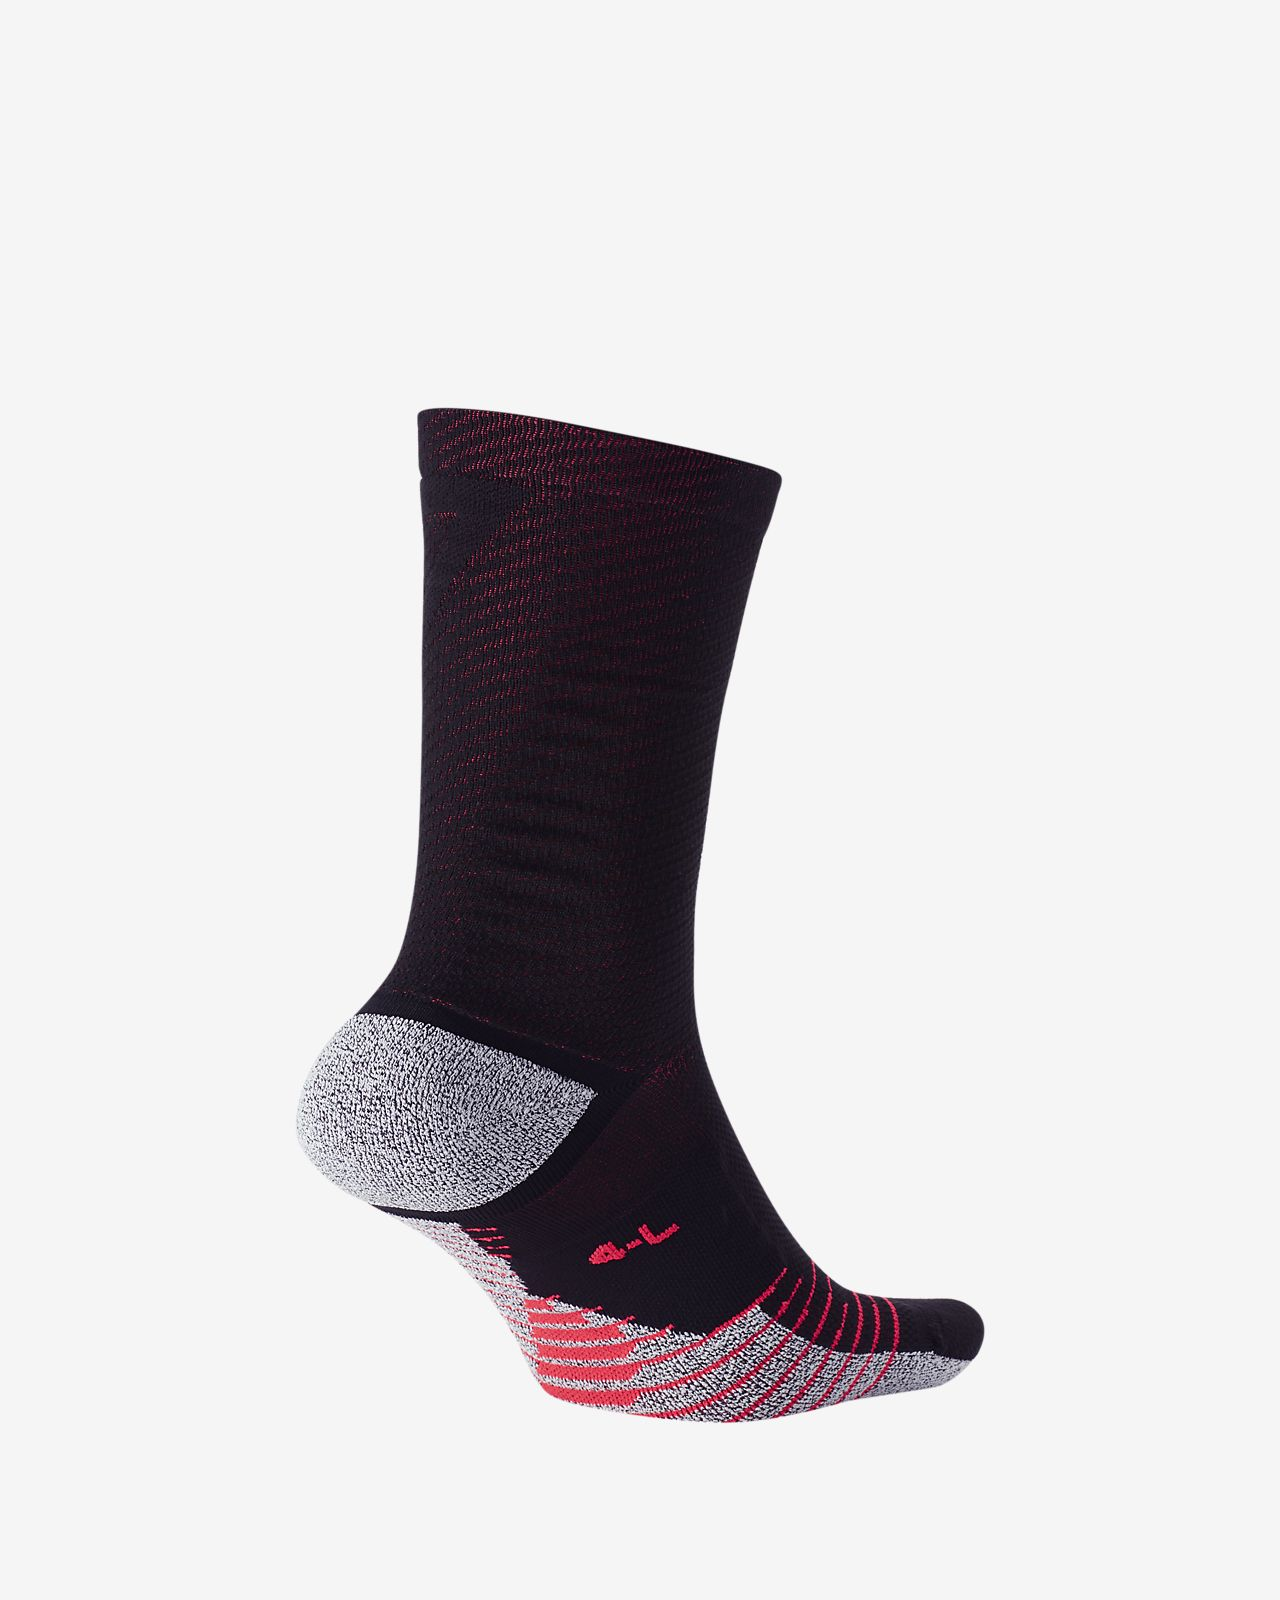 Chaussettes de football NikeGrip CR7 Graphic Crew